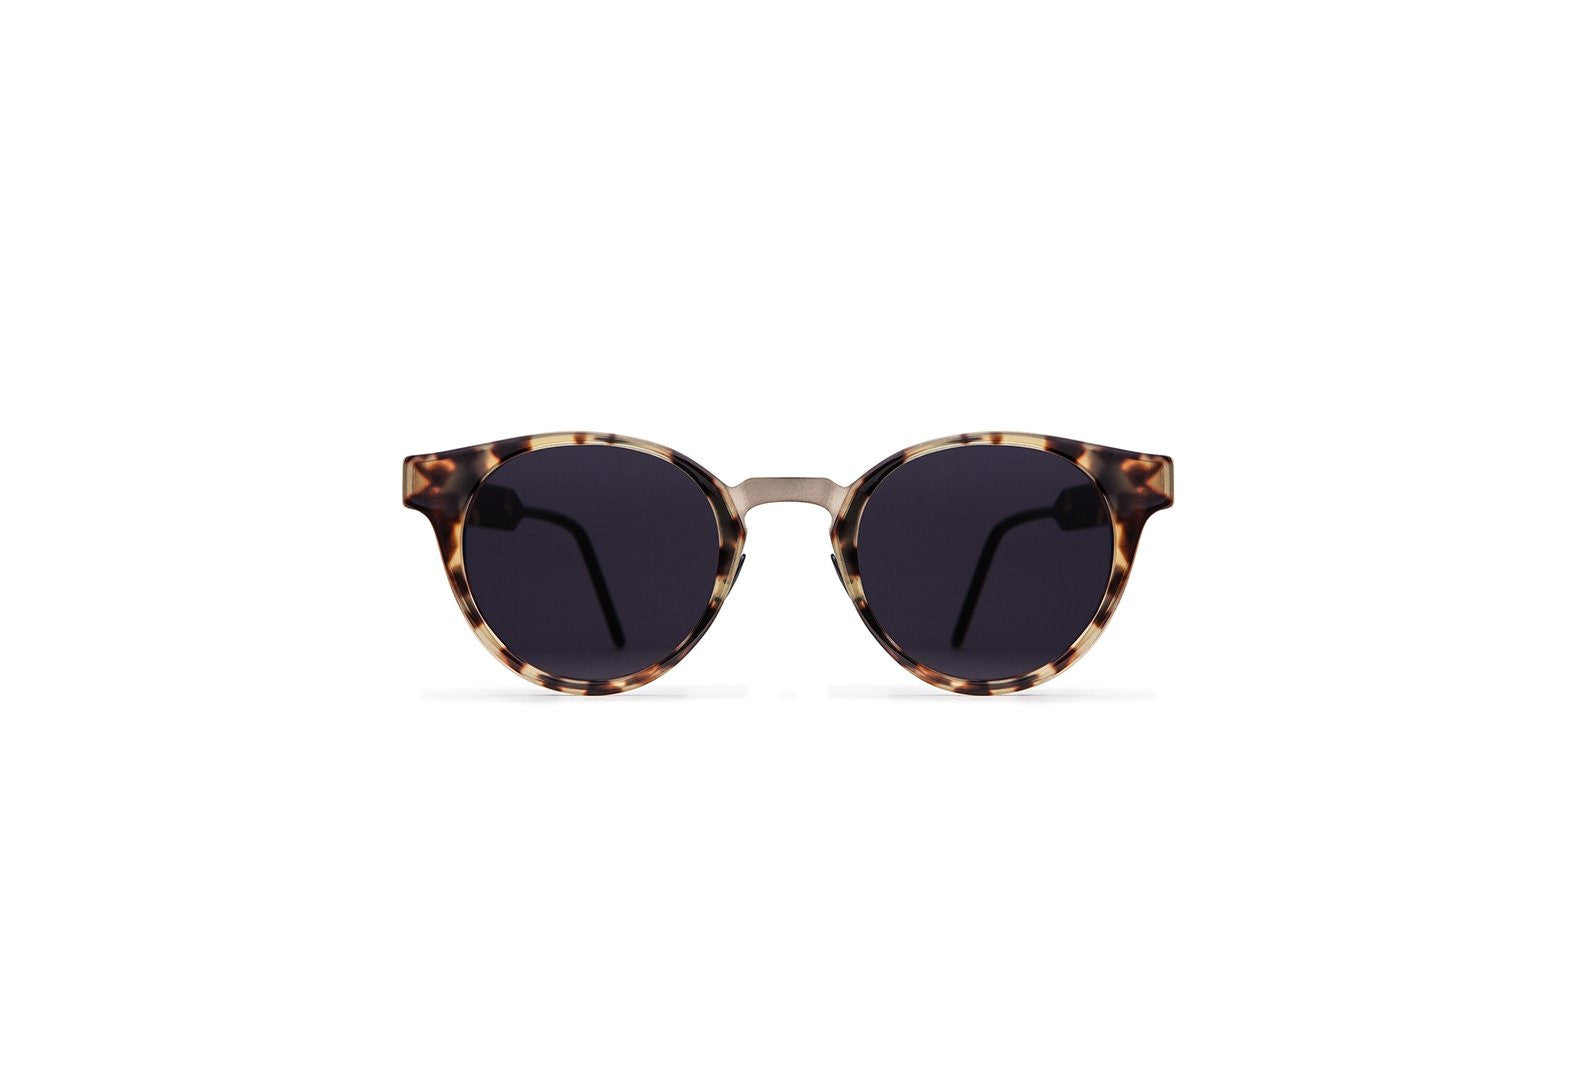 Williams Sunglasses - Lesetta